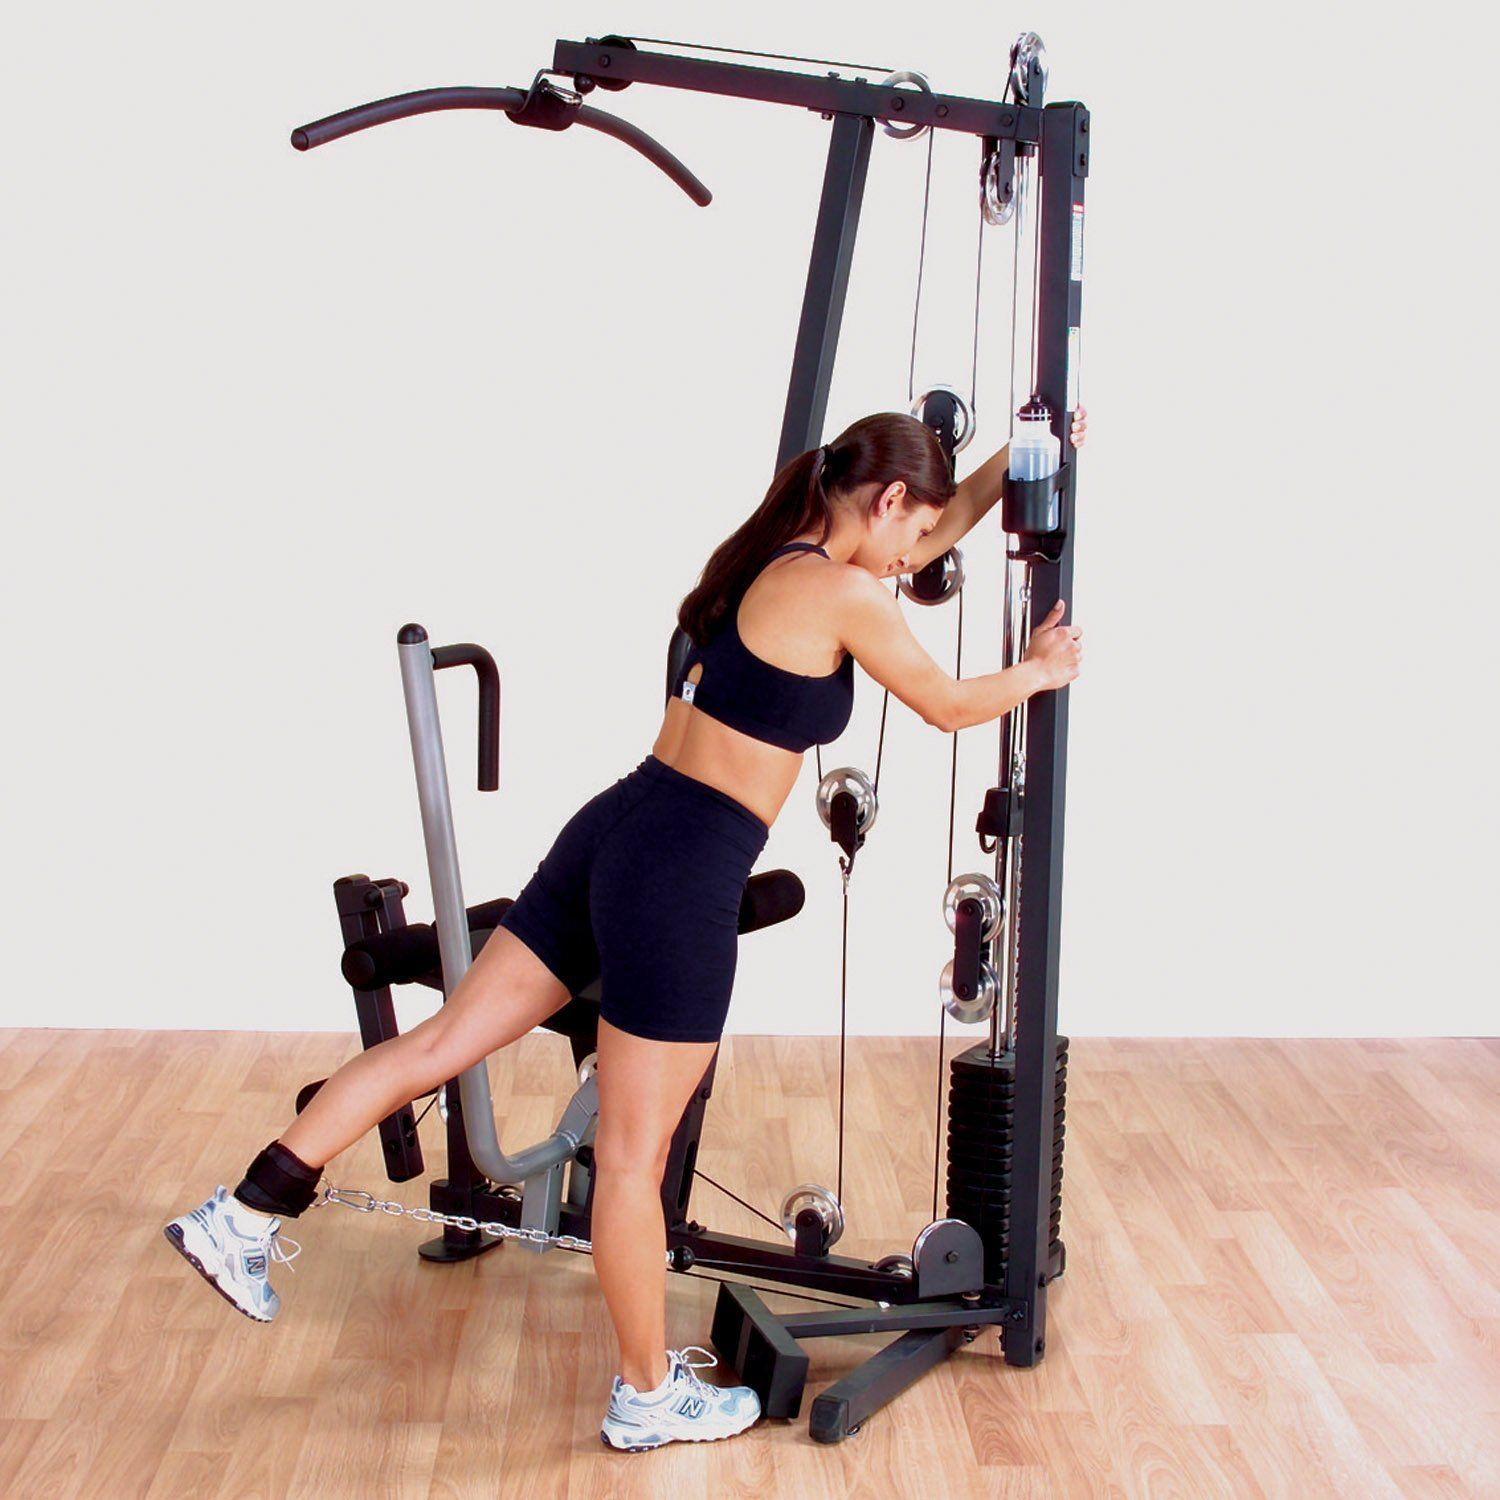 Robot Check Gym Gym For Beginners Strength Training Workouts